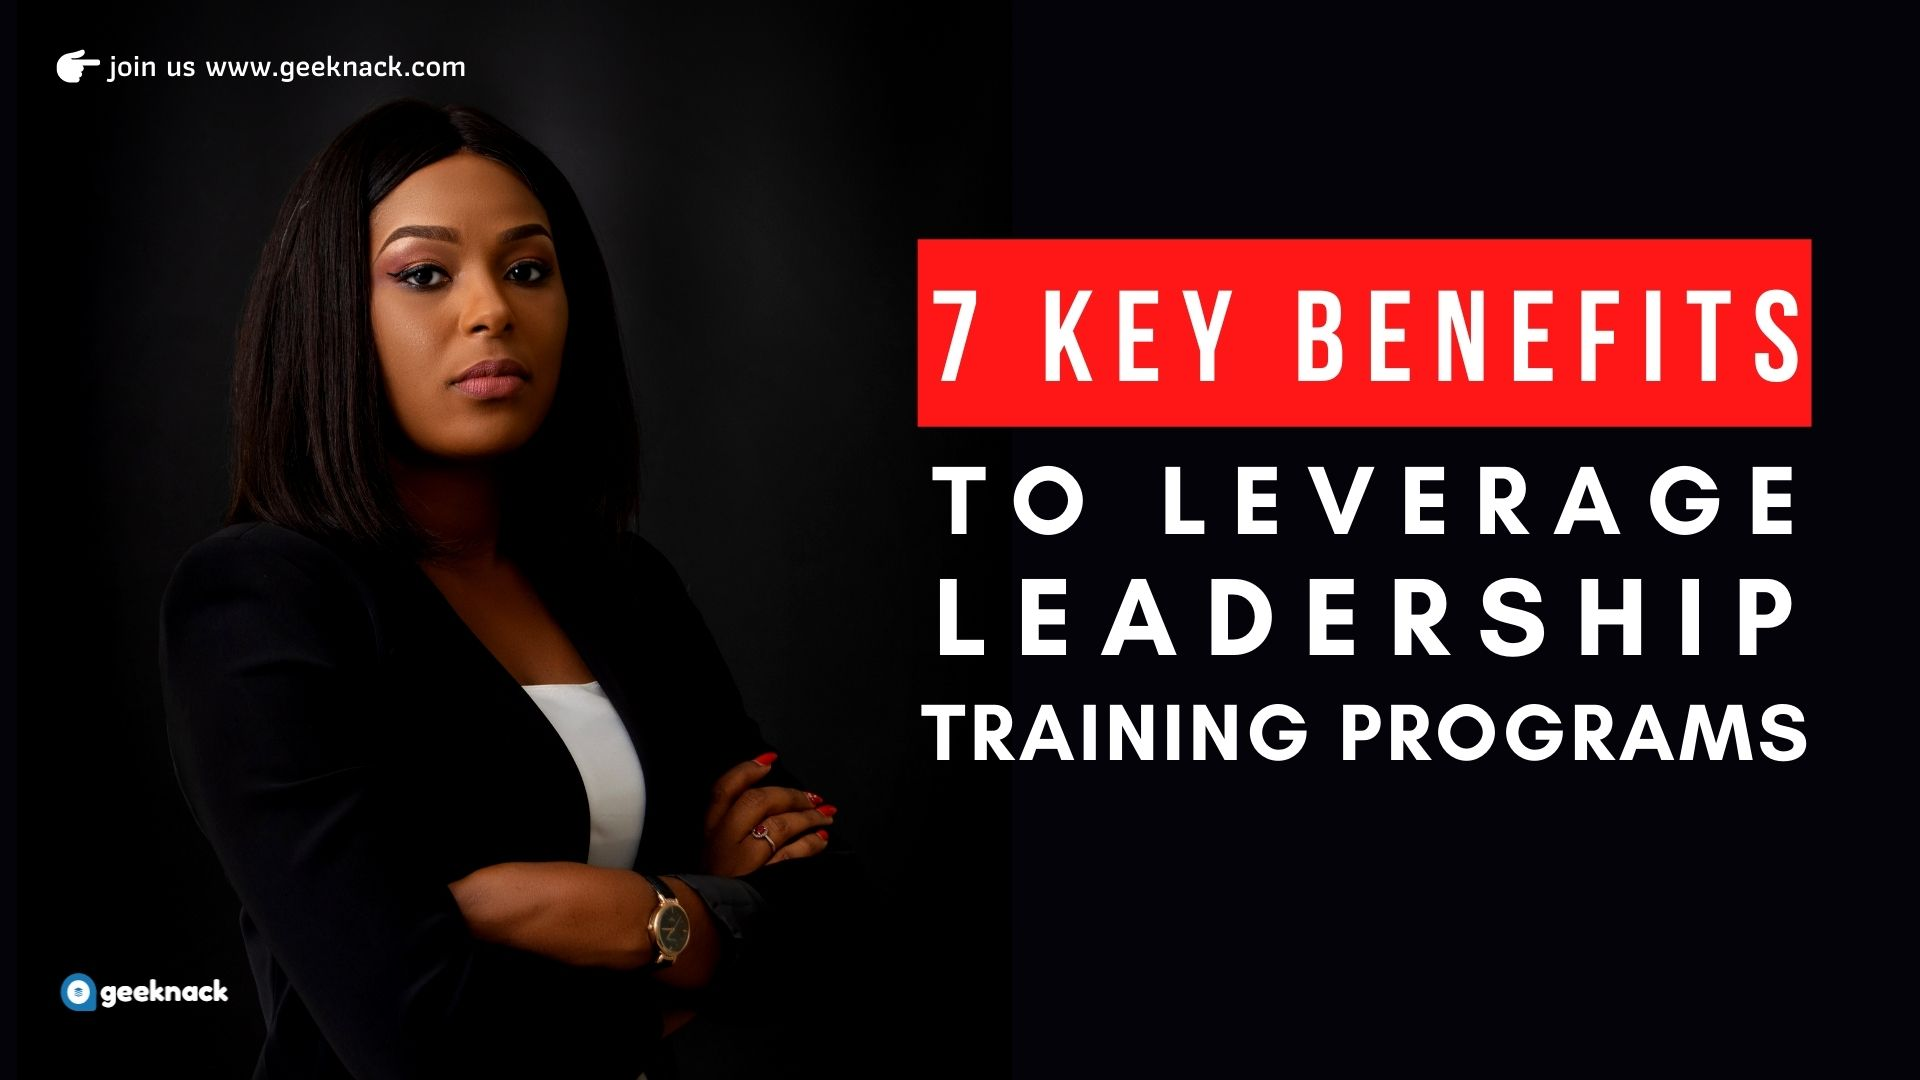 7 Key Benefits To Leverage Leadership Training Programs